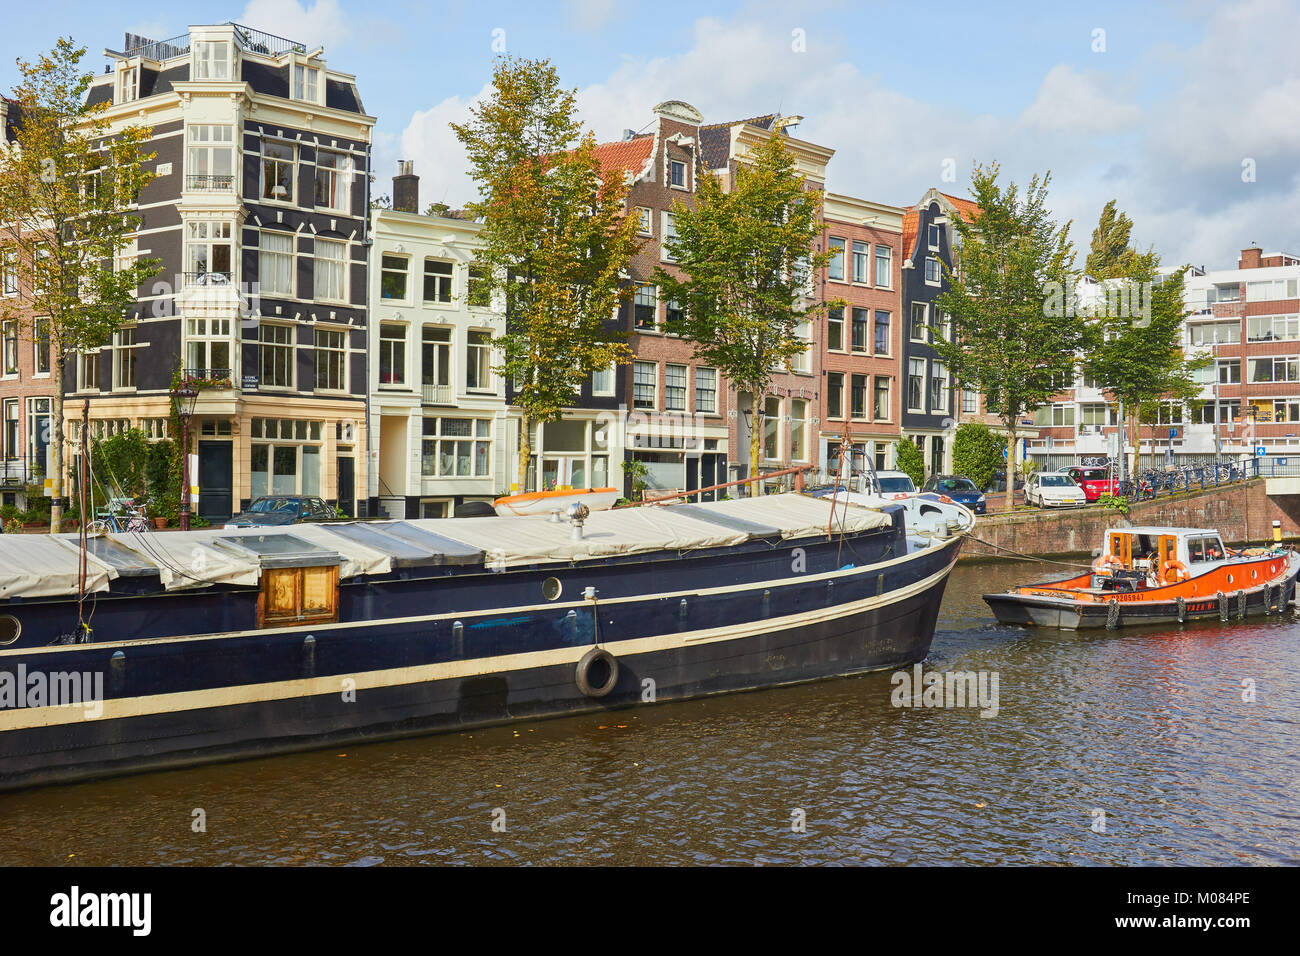 Tug boat guiding a barge along Nieuwe Herengracht canal, Amsterdam, Netherlands - Stock Image